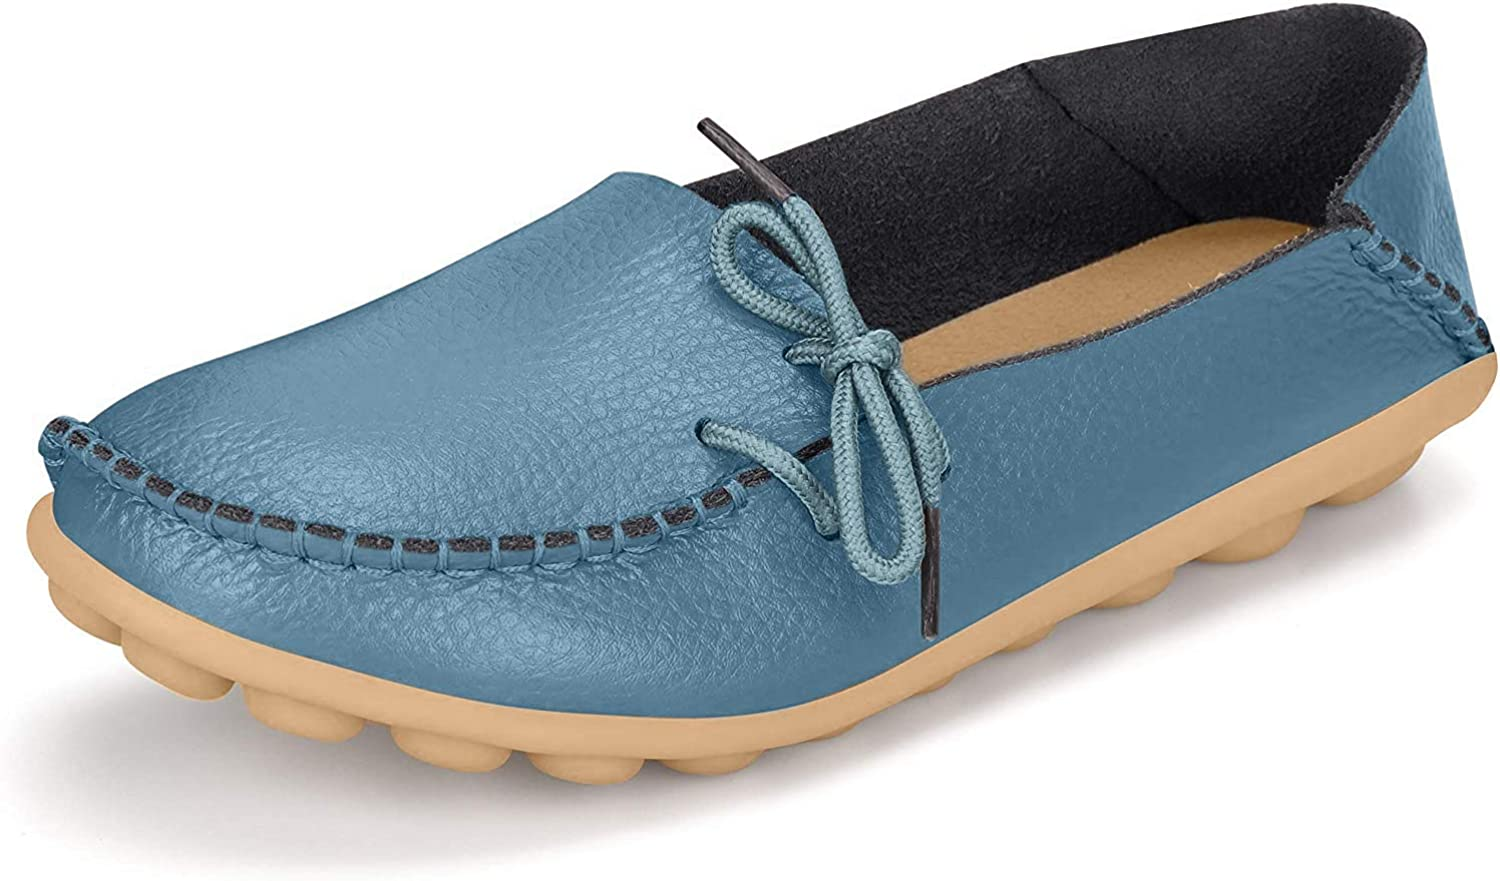 Fay Waters Womens Leather Loafers Ballet Shoes Casual Moccasins Driving Flats Slip-on Shoes